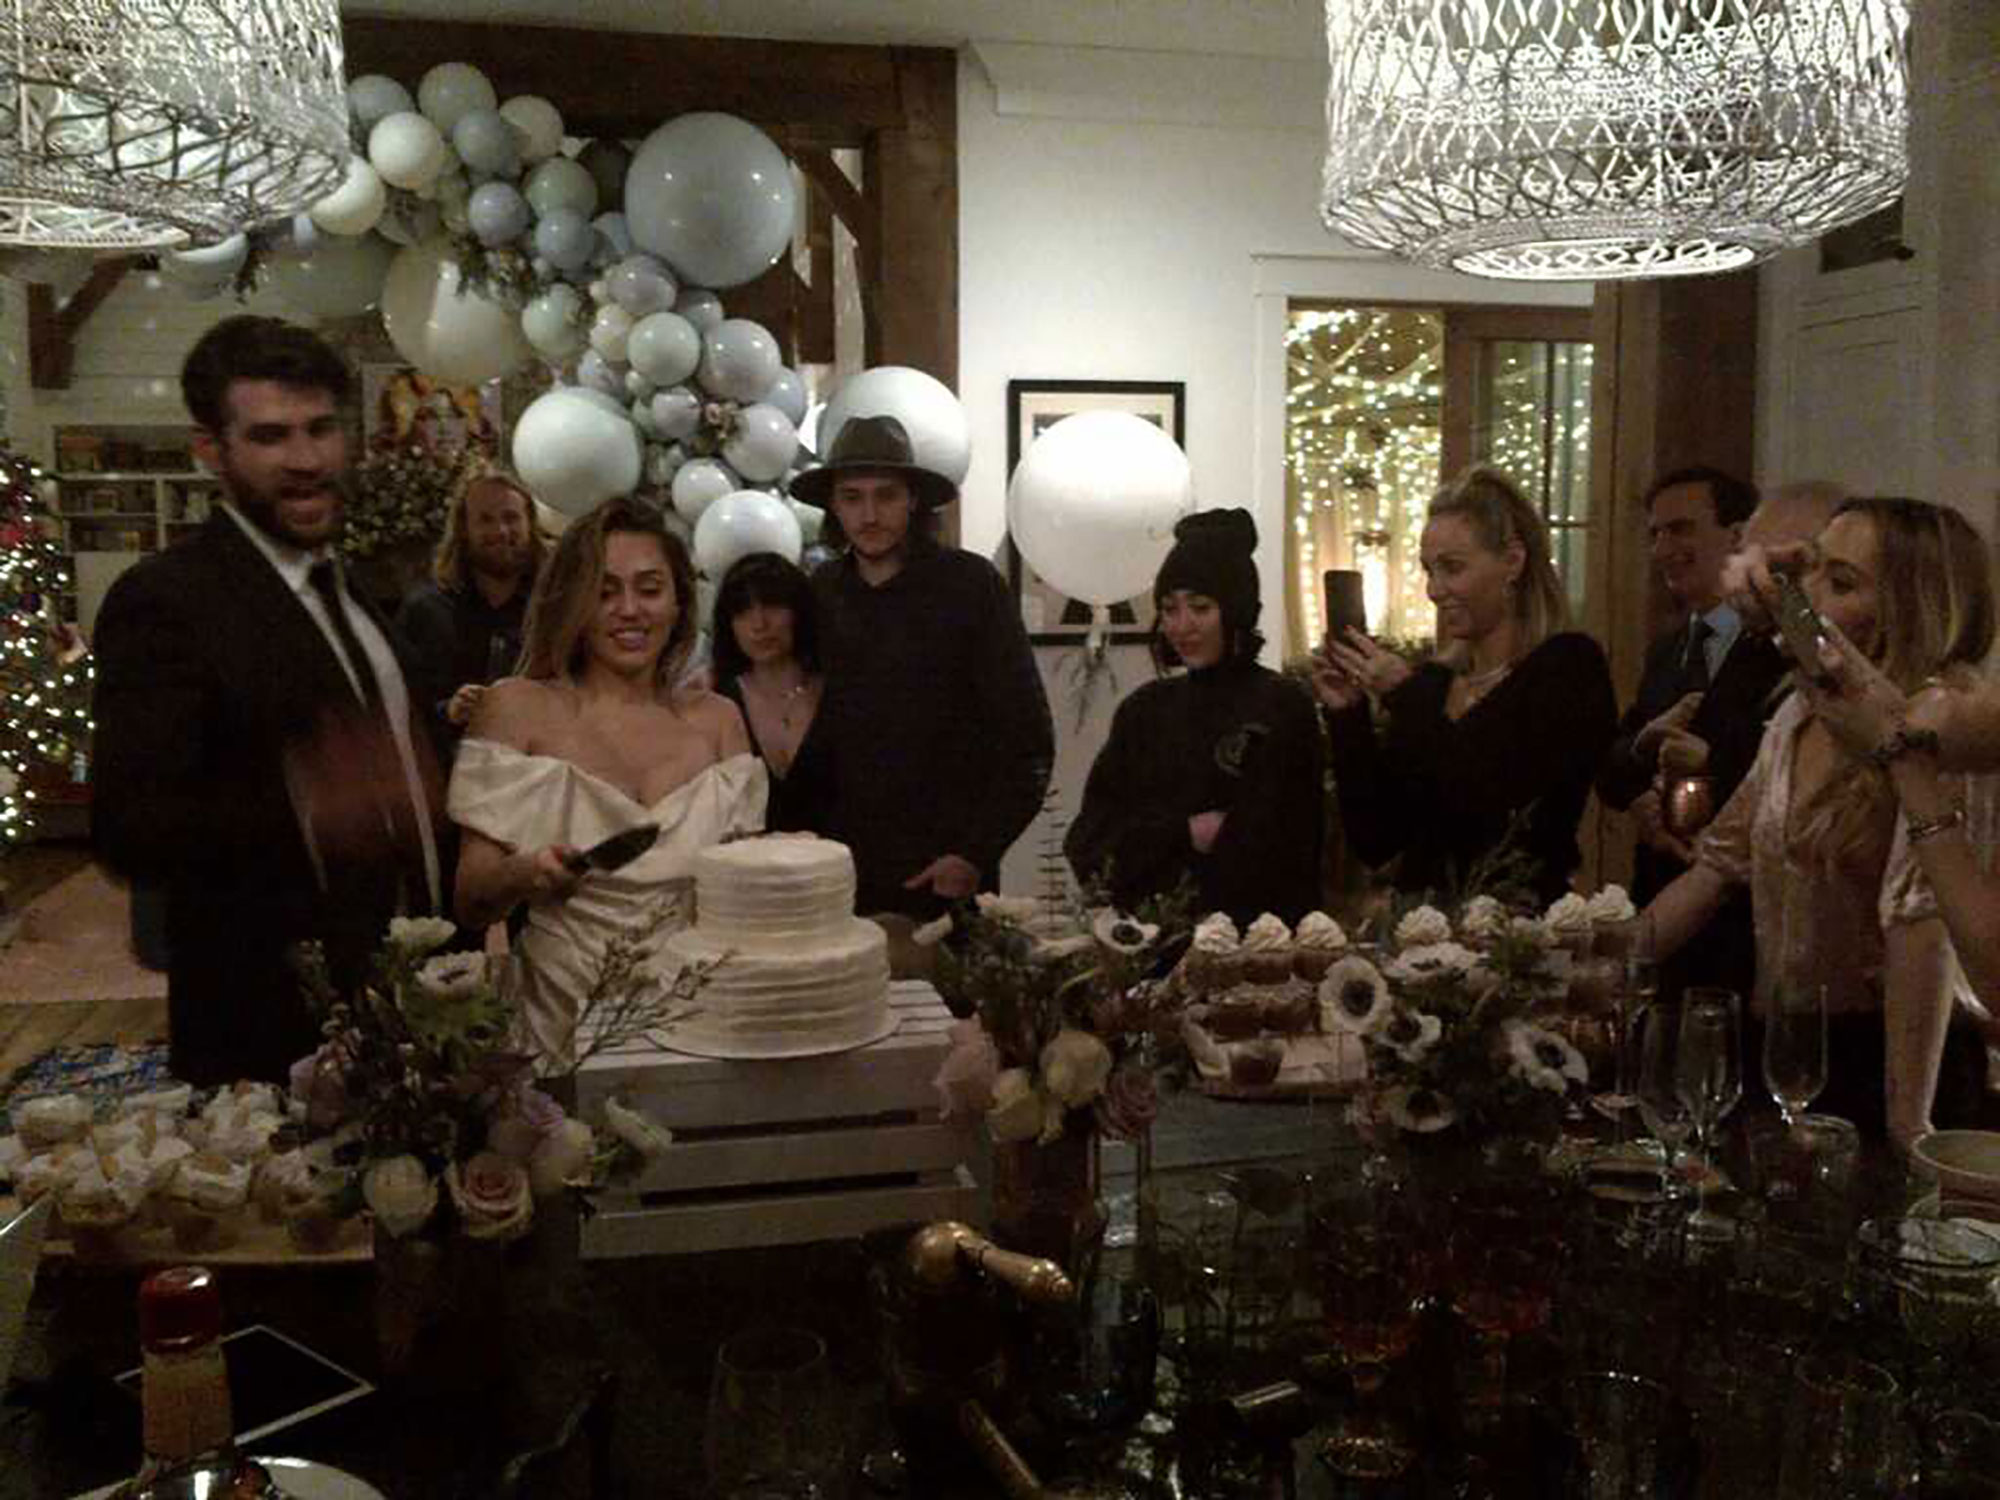 """Inside Miley Cyrus and Liam Hemsworth's Secret Wedding: Pics - Billy Ray shared a photo of the Cyrus and Hemsworth families watching the newly married couple cut their cake. """"Wedding wouldn't be complete with out one shot from Dads out dated blackberry camera,"""" the """"Achy Breaky Heart"""" crooner captioned the pic via Twitter ."""